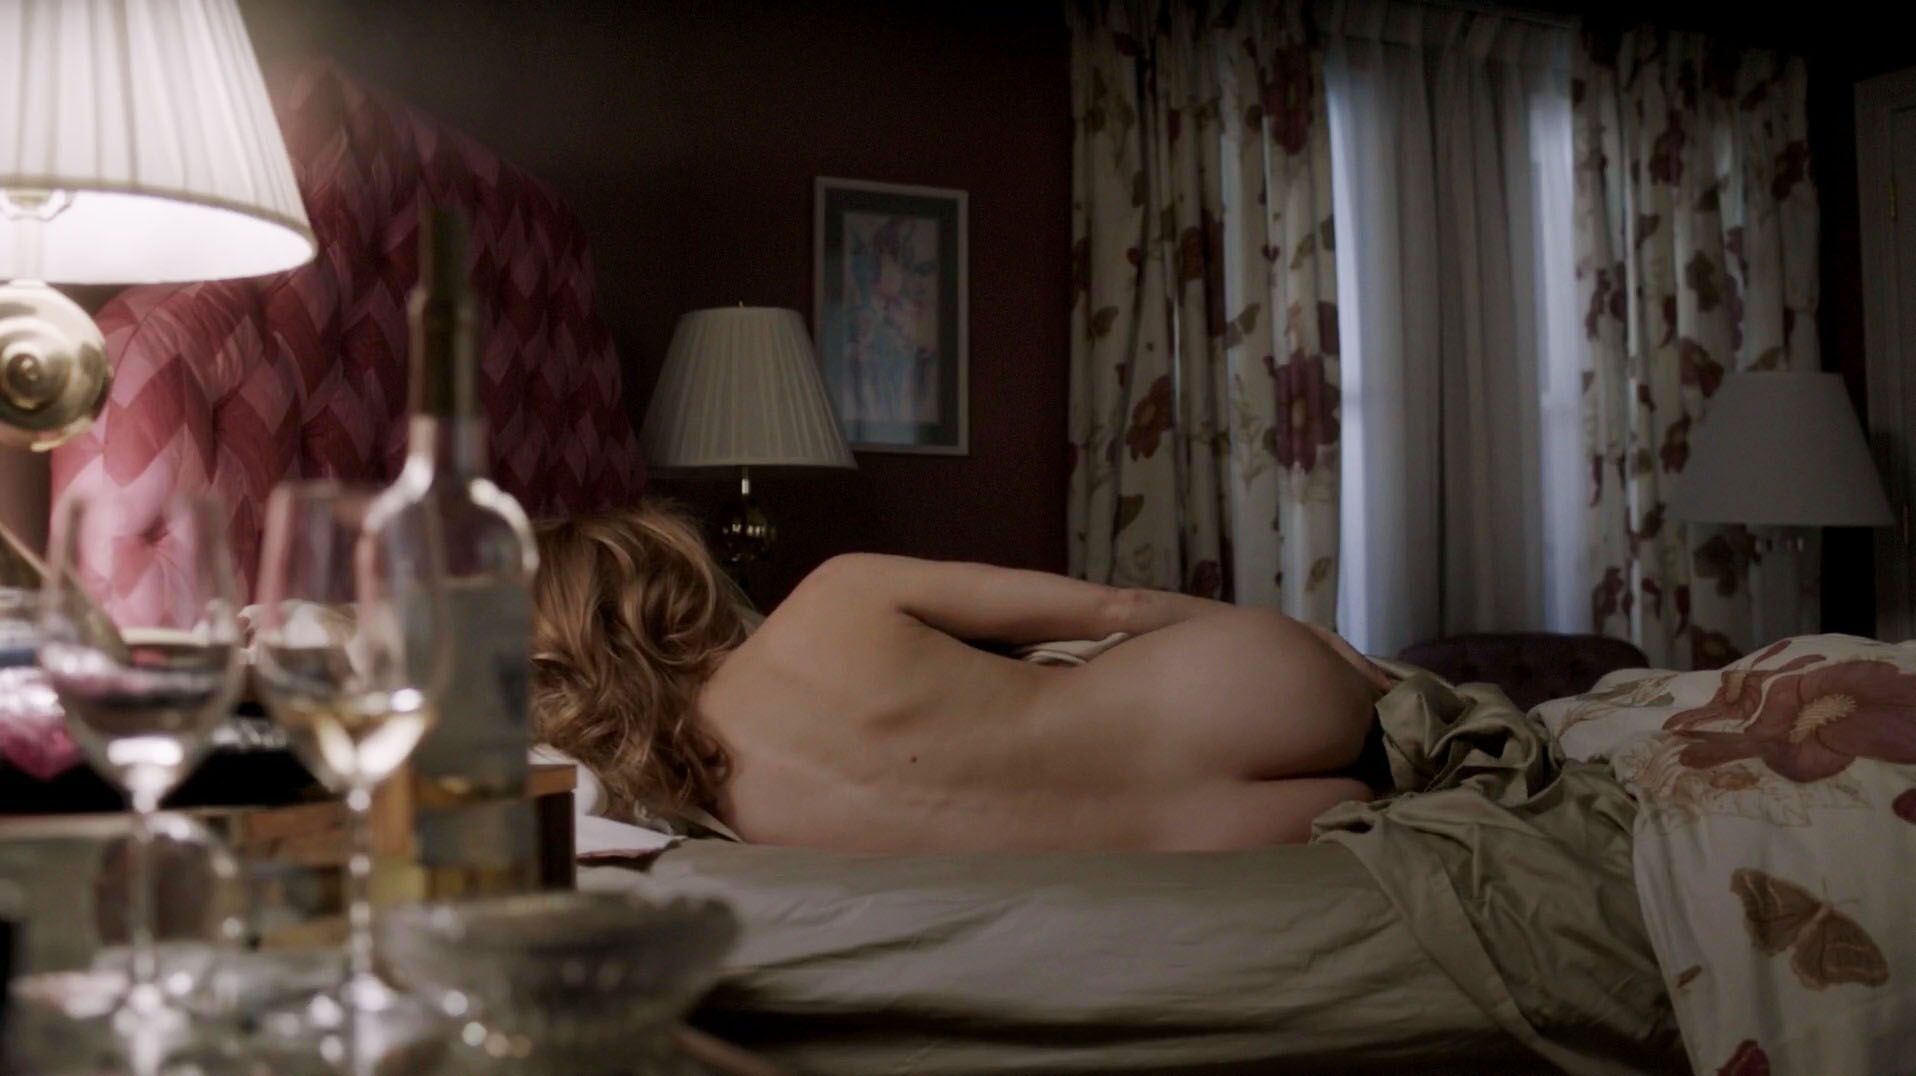 Keri russell the americans hot